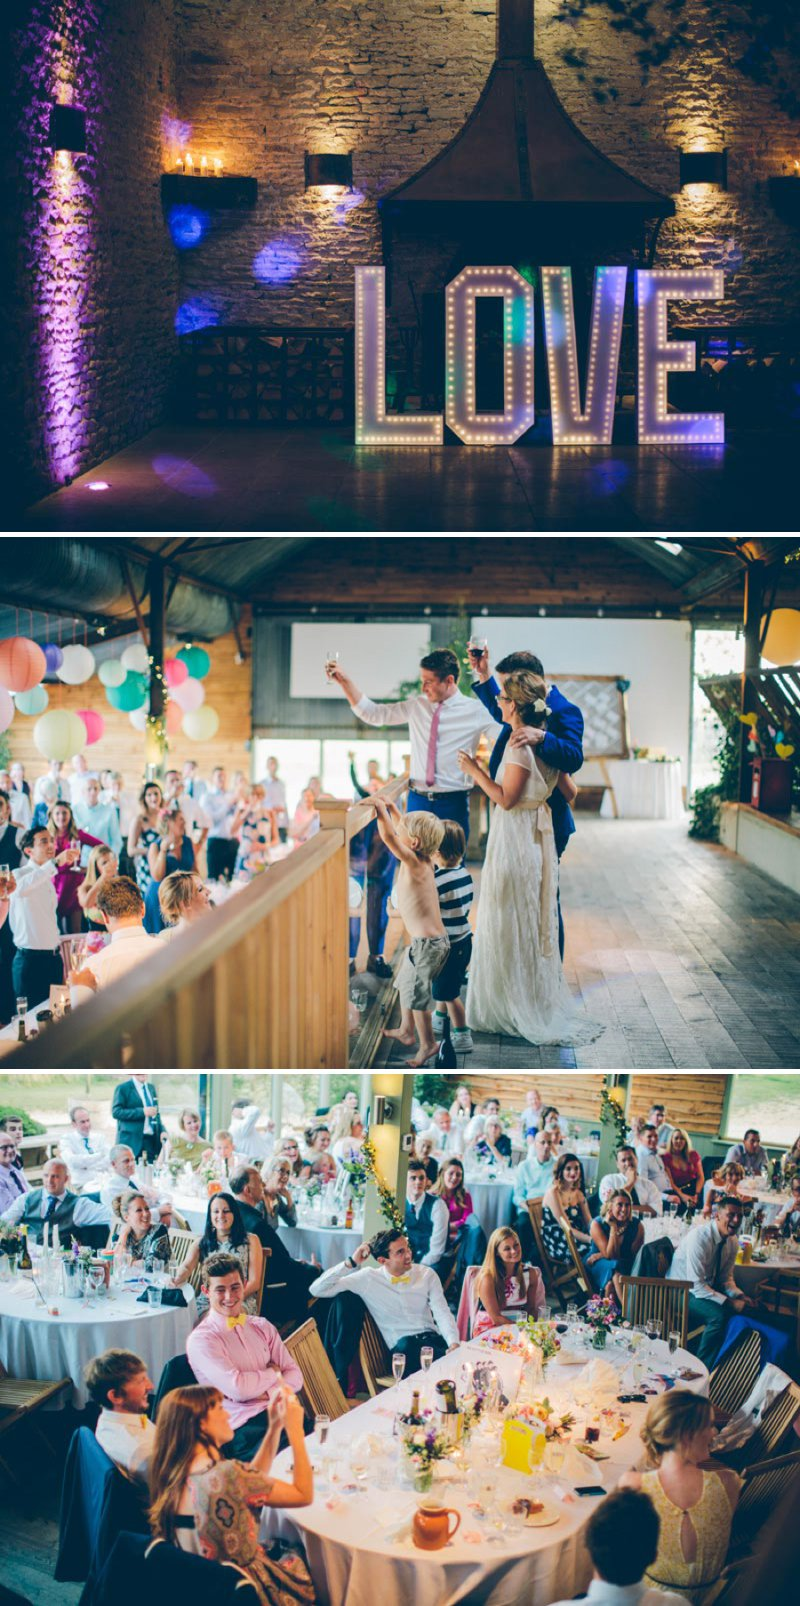 Colourful Contemporary Wedding At Cripps Stone Barn In The Cotswolds With Bride In Charlie Brear Gown And Gold Jimmy Choo Peeptoes And Groom In Bespoke Suit By Marc Wallace With Groomsmen In Bowties 7